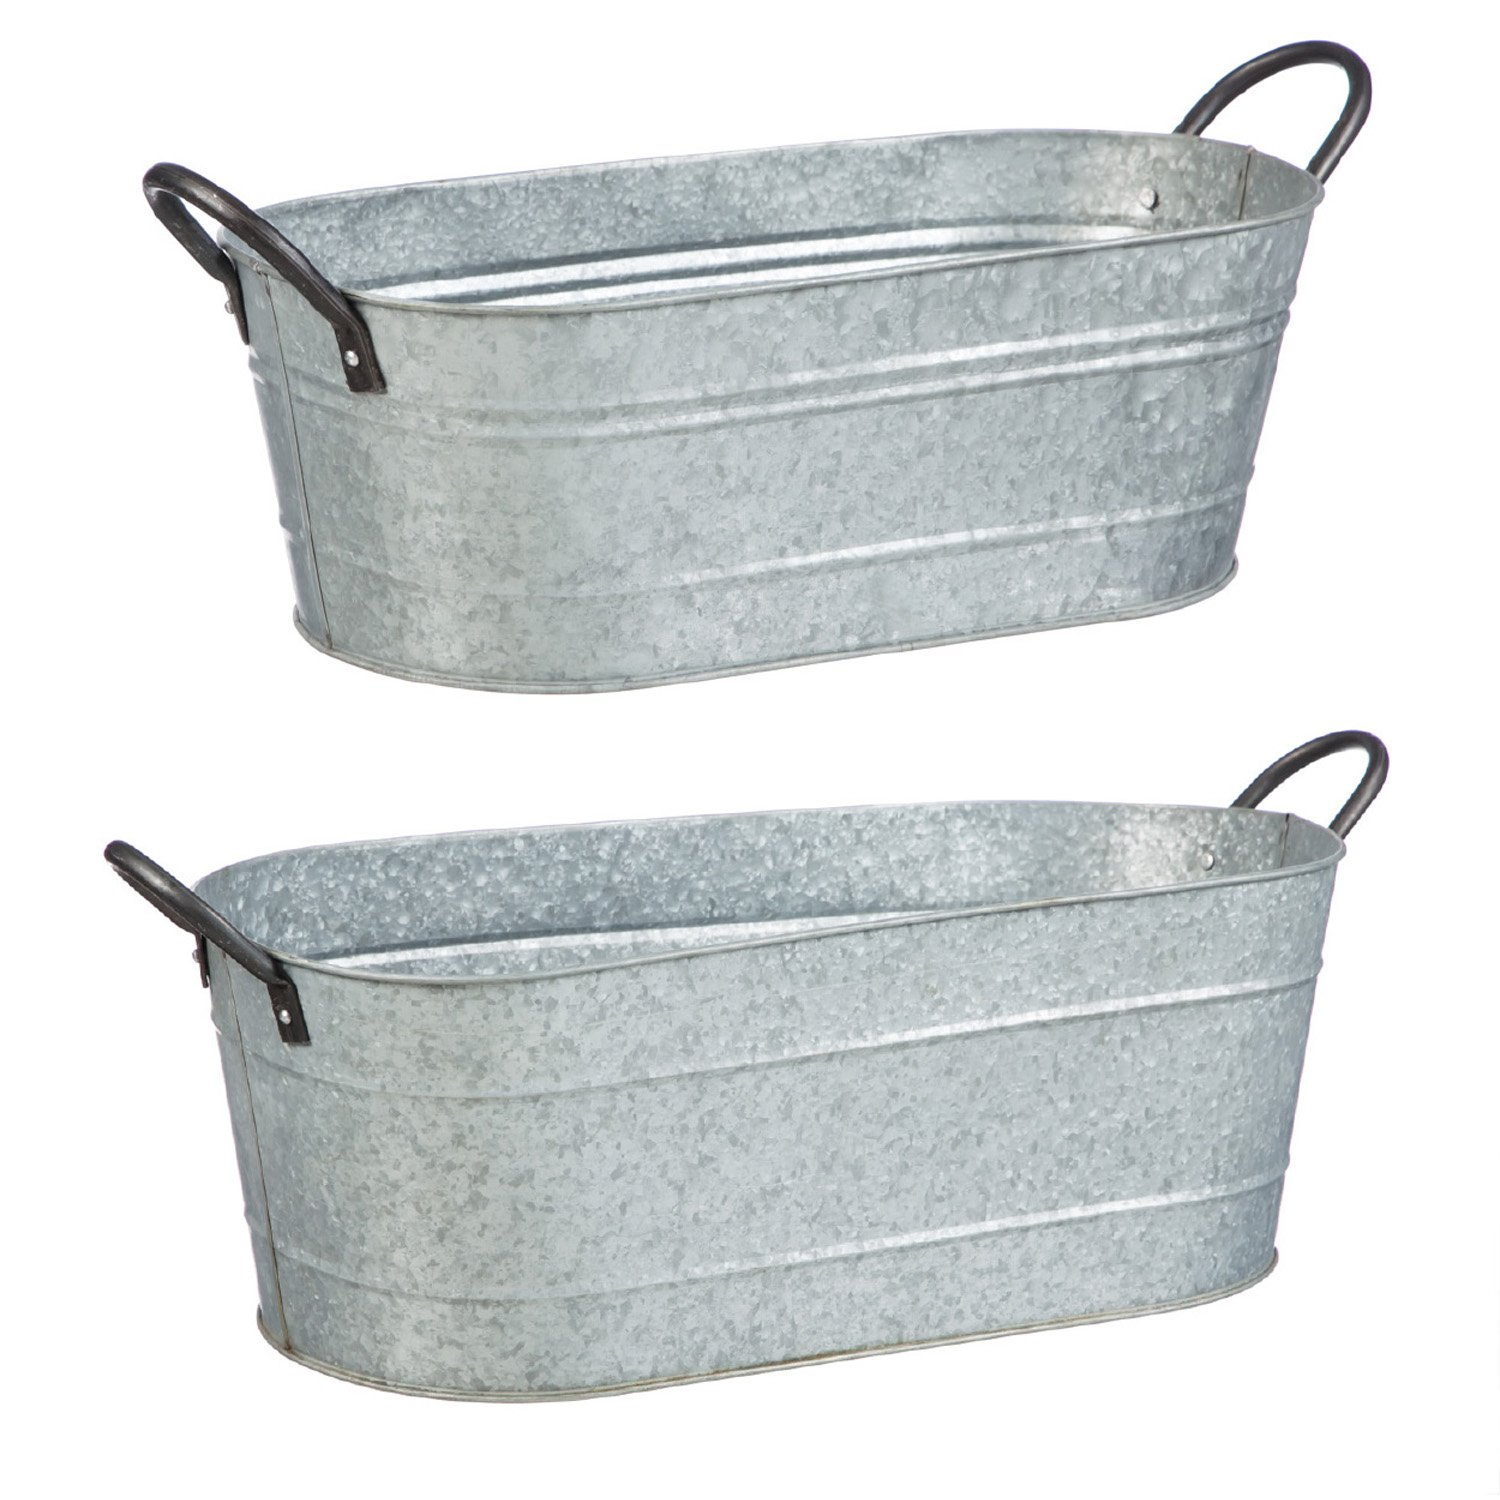 Evergreen Garden Urban Garden Galvanized Metal Containers, Set of 2